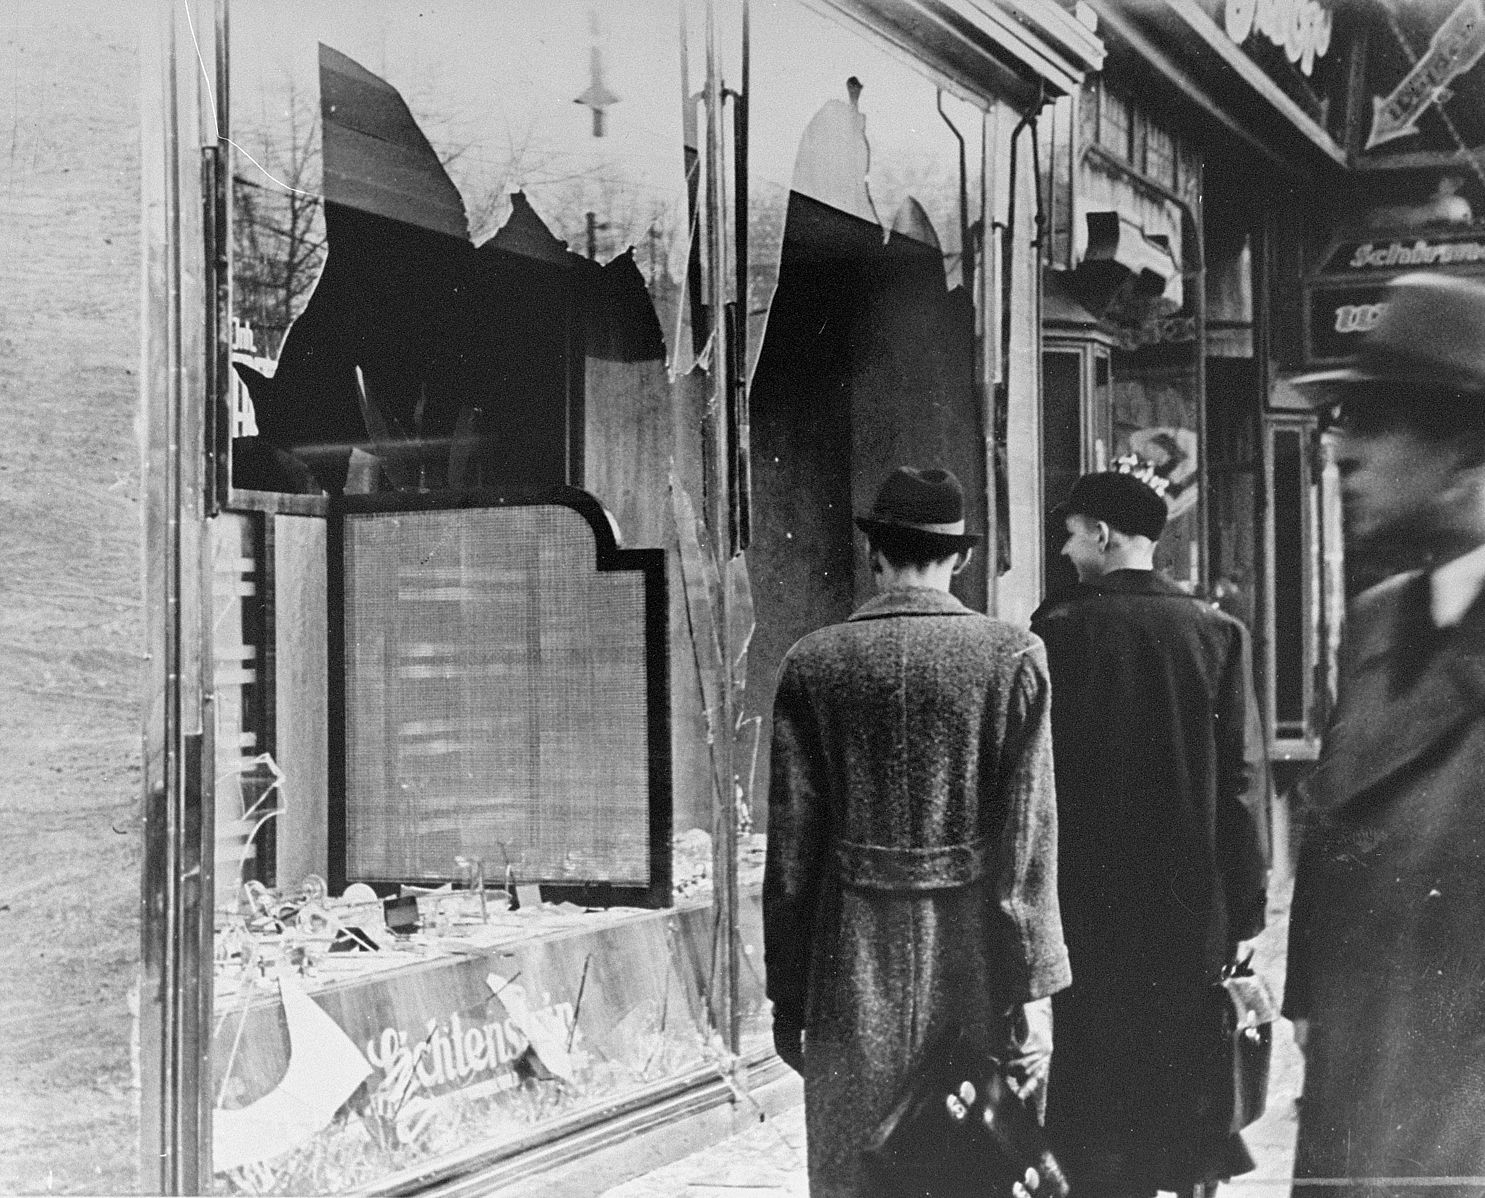 Germans walk by a Jewish business destroyed on Kristallnacht.  [Public Domain]